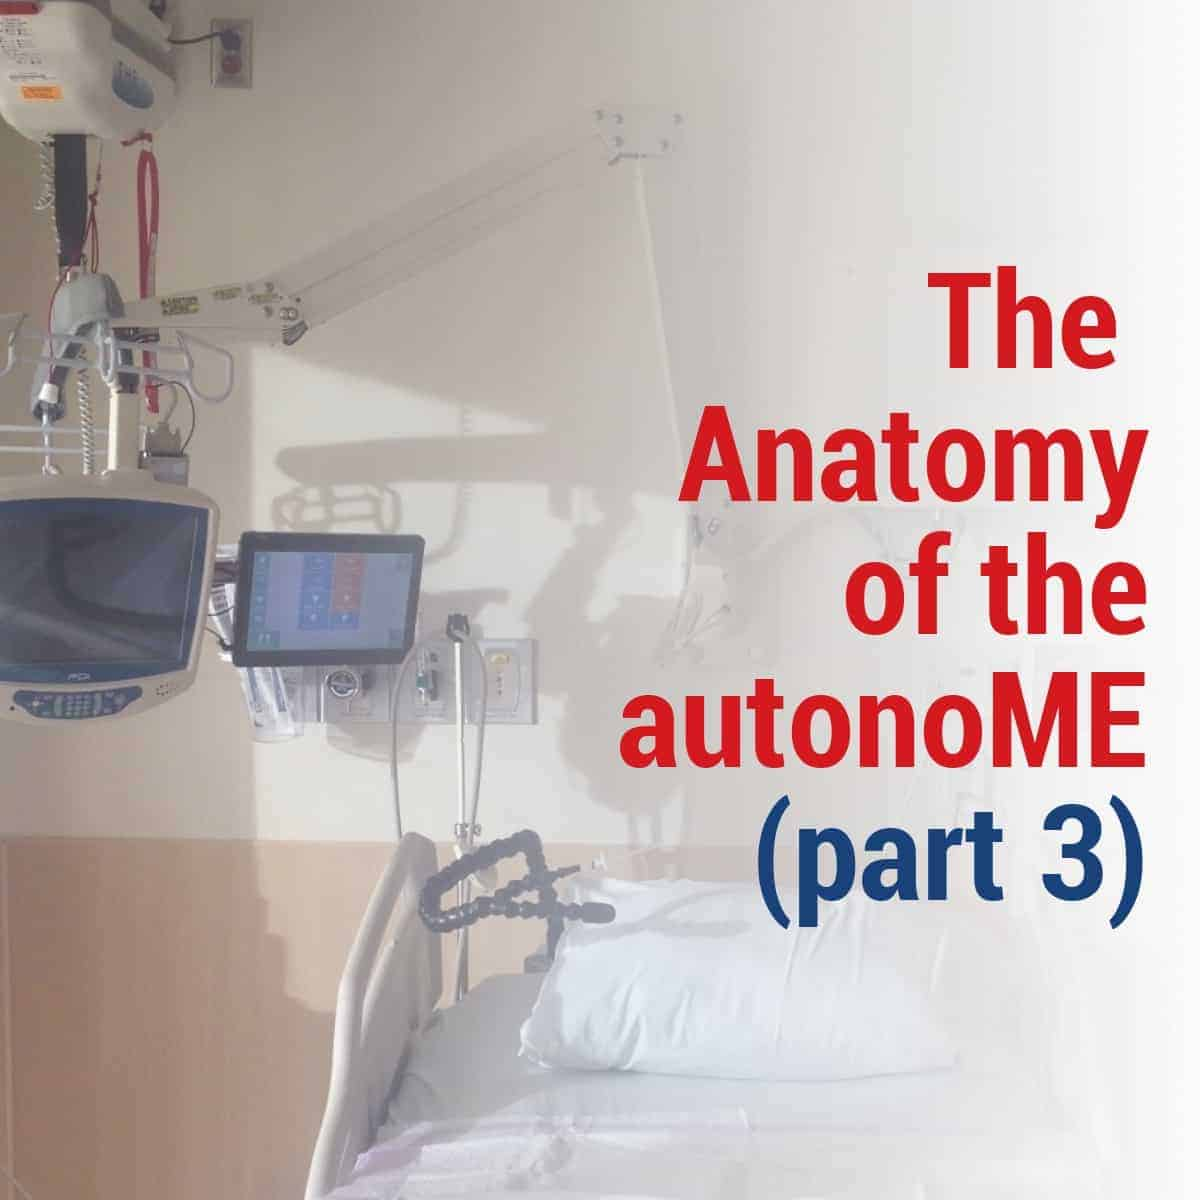 The Anatomy of the autonoME (Part 3)